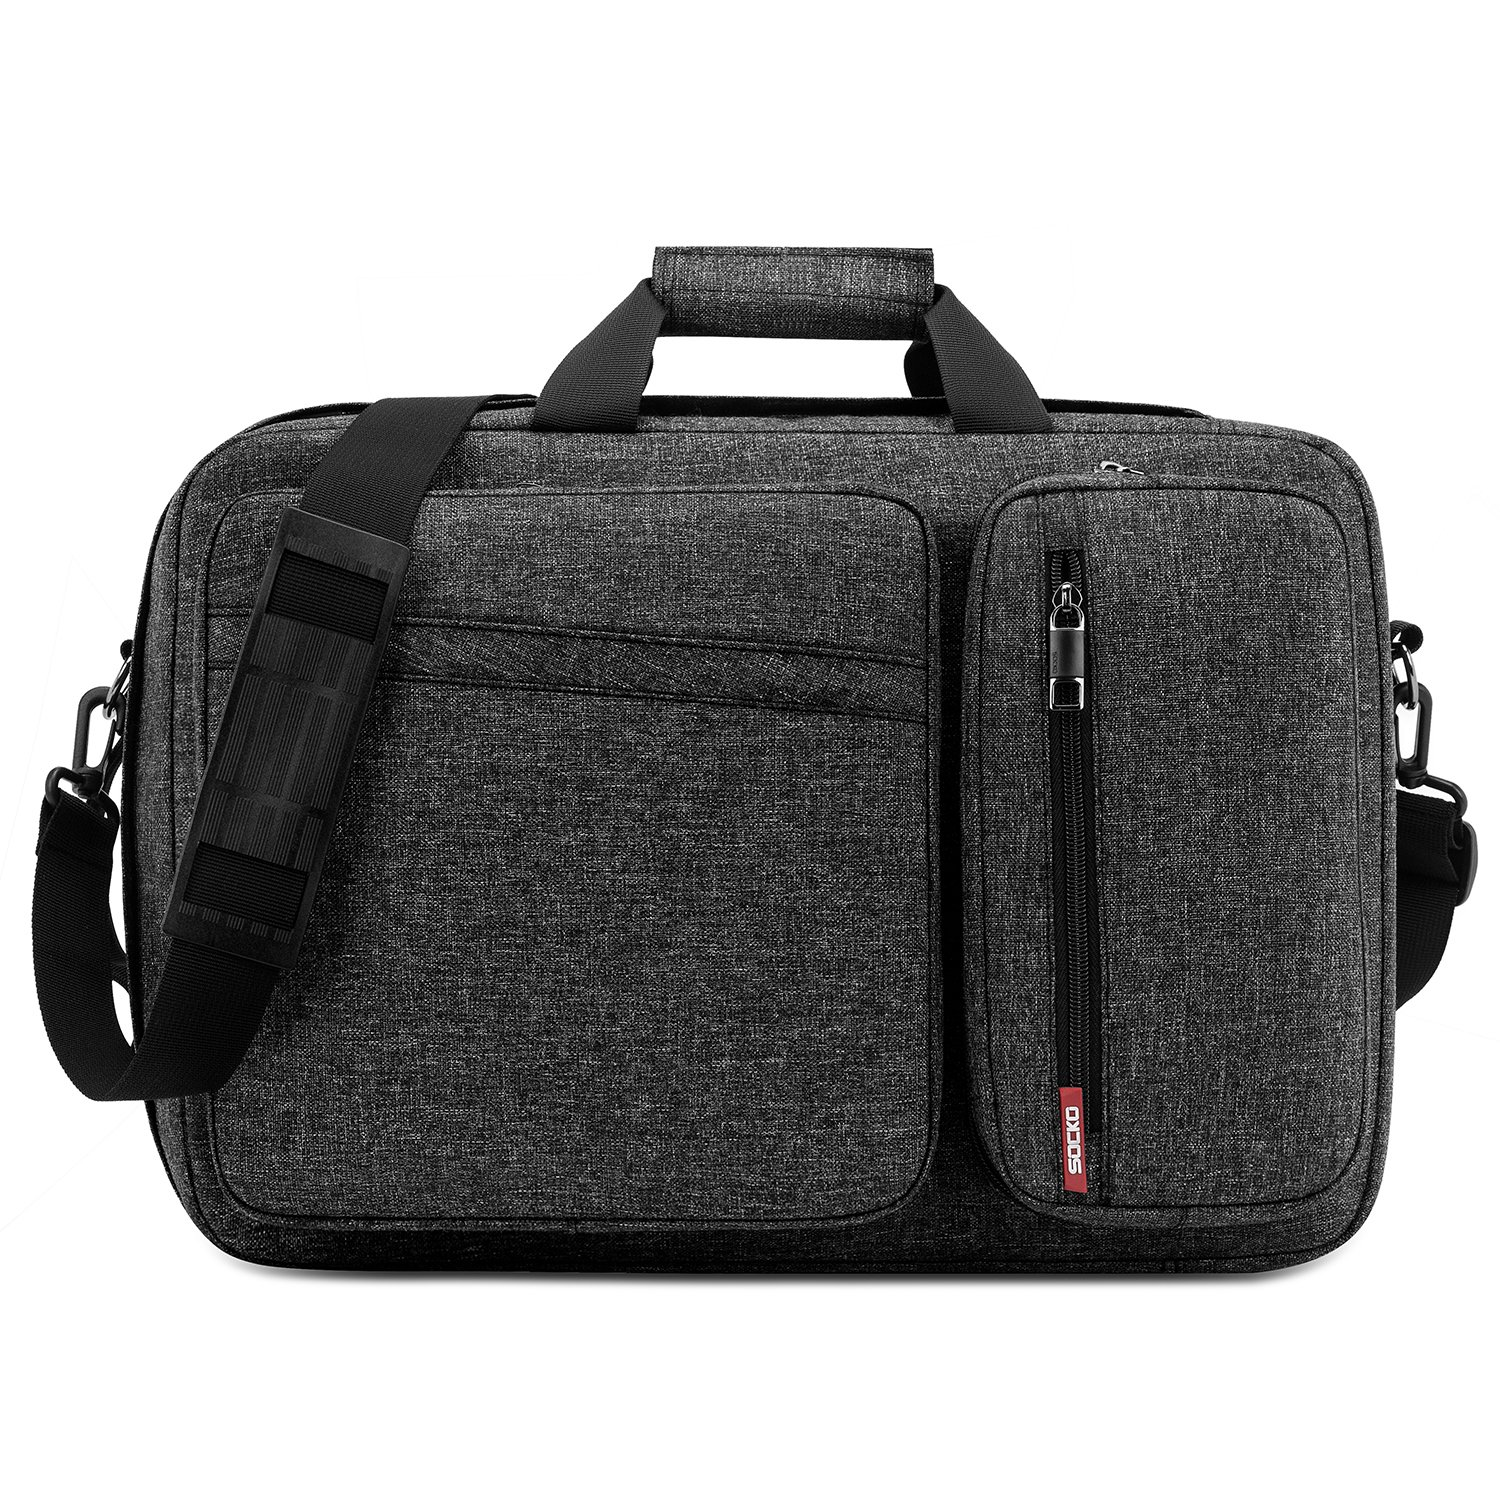 Convertible Laptop Bag Backpack SOCKO Multi Functional Mens Womens Water Resistant Messenger Bag Briefcase Business Travel College Laptop Shoulder Bag for Up to 17.3 Inch Laptop Computer Dark Grey